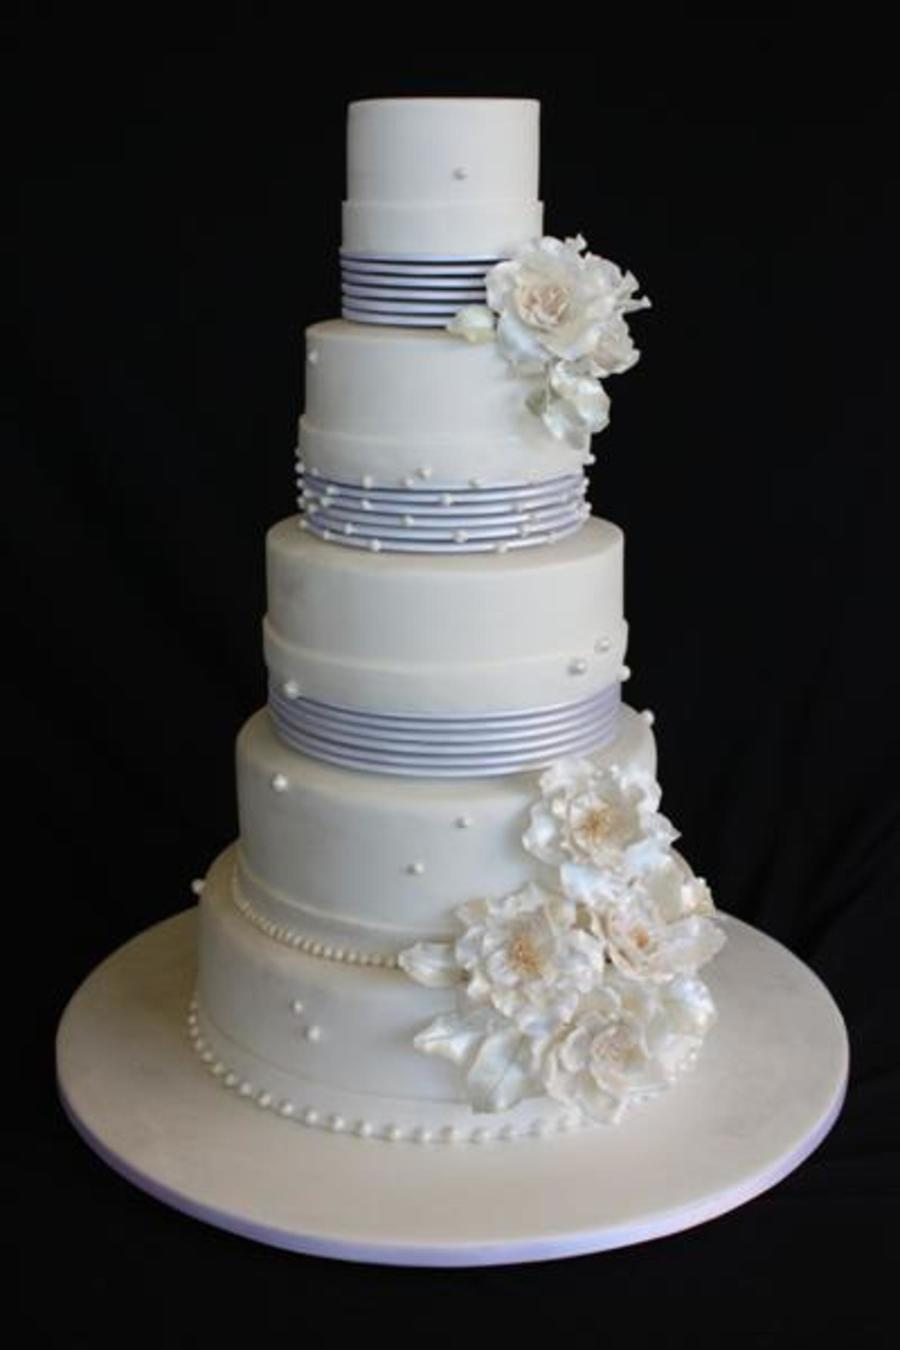 A Marina Sousa Design The 3 Top Tiers Had Multiple Boards Underneath Each With A Smaller One In Between Which Made Them Appear To on Cake Central